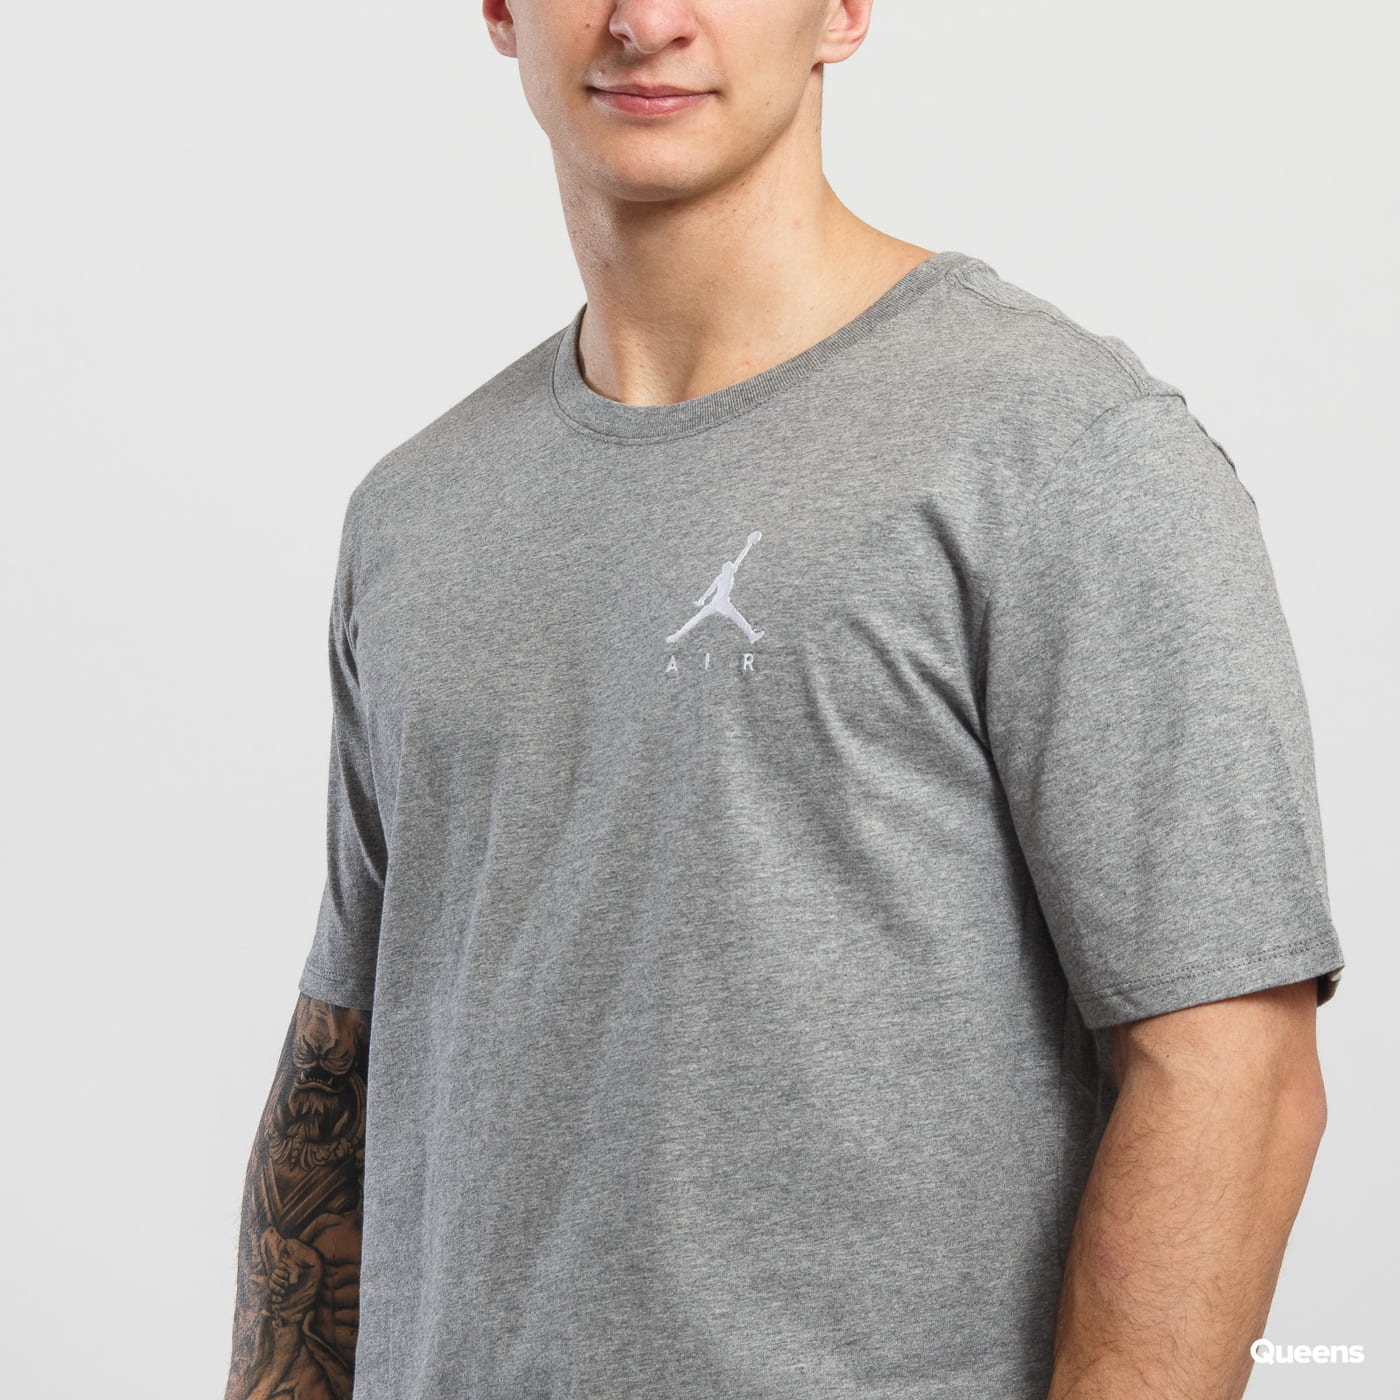 Jordan Jumpman Air Embroided Tee grau melange